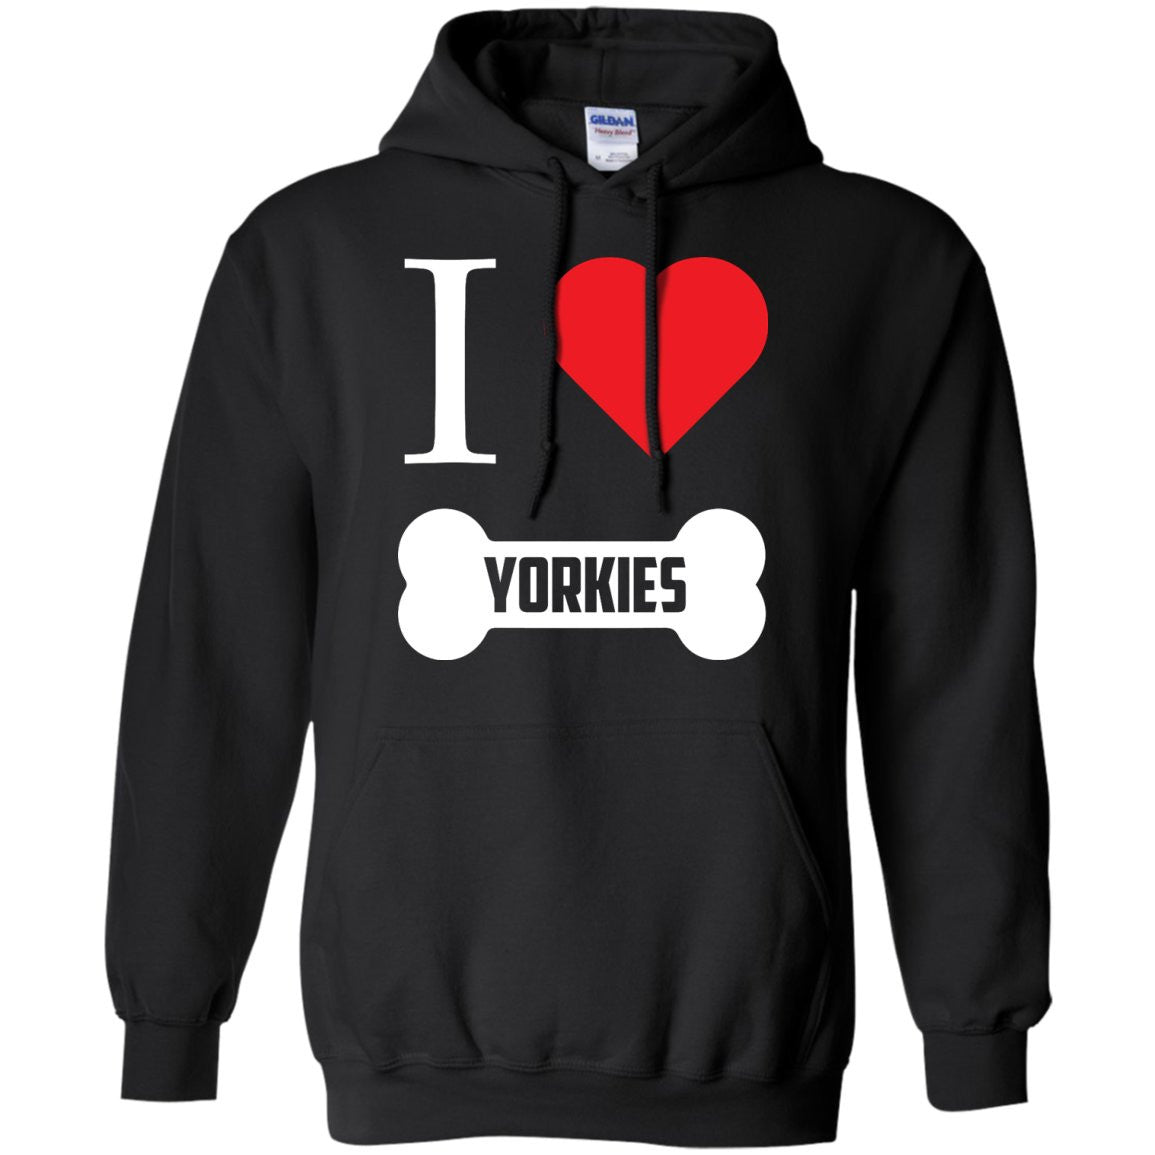 Yorkshire - I LOVE MY YORKSHIRE (BONE DESIGN) - Pullover Hoodie 8 oz